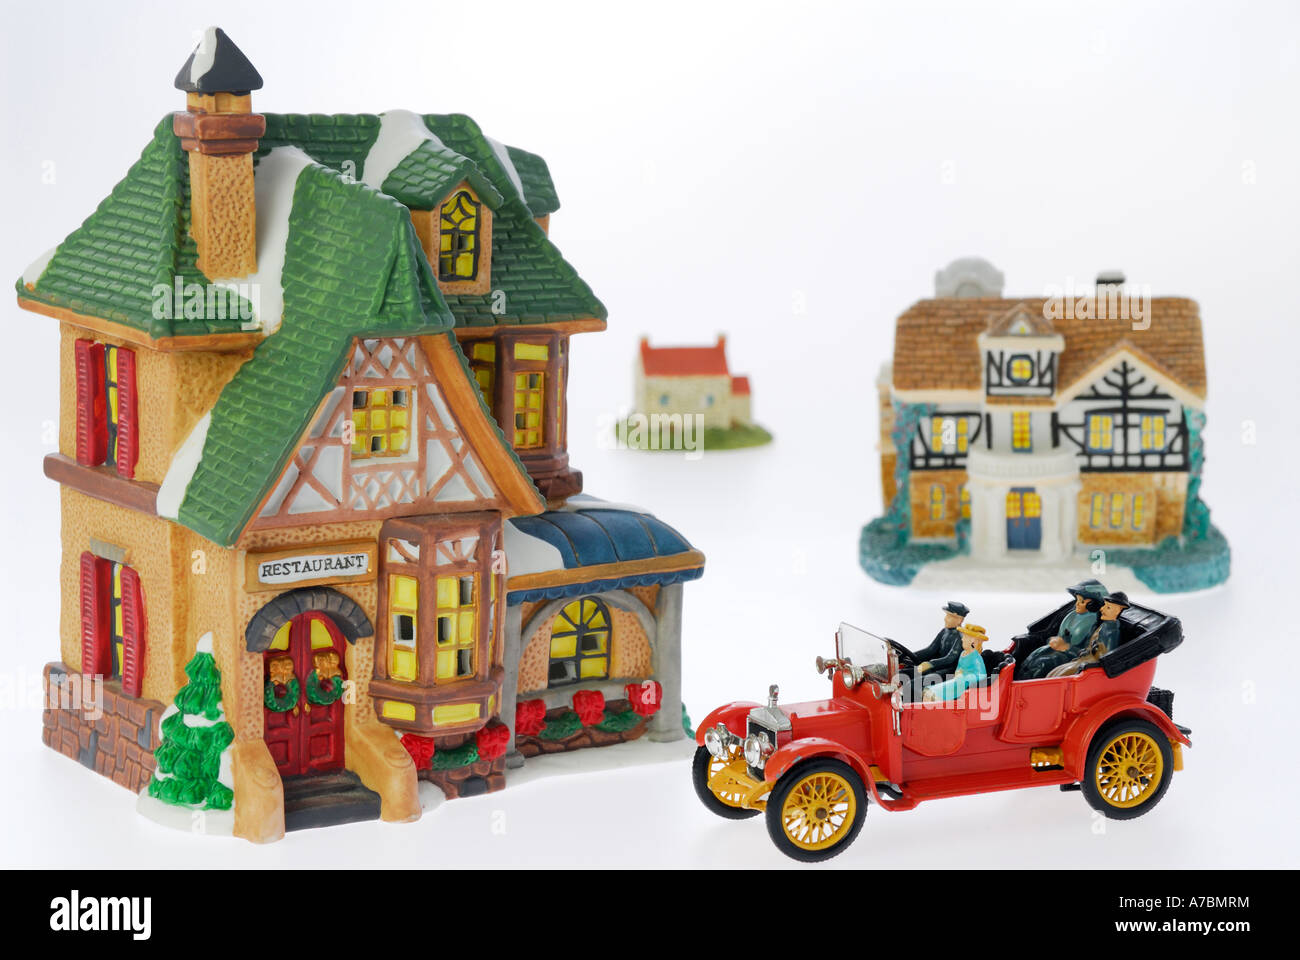 Model toy houses and car of a rich family going out to a restaurant on white background - Stock Image